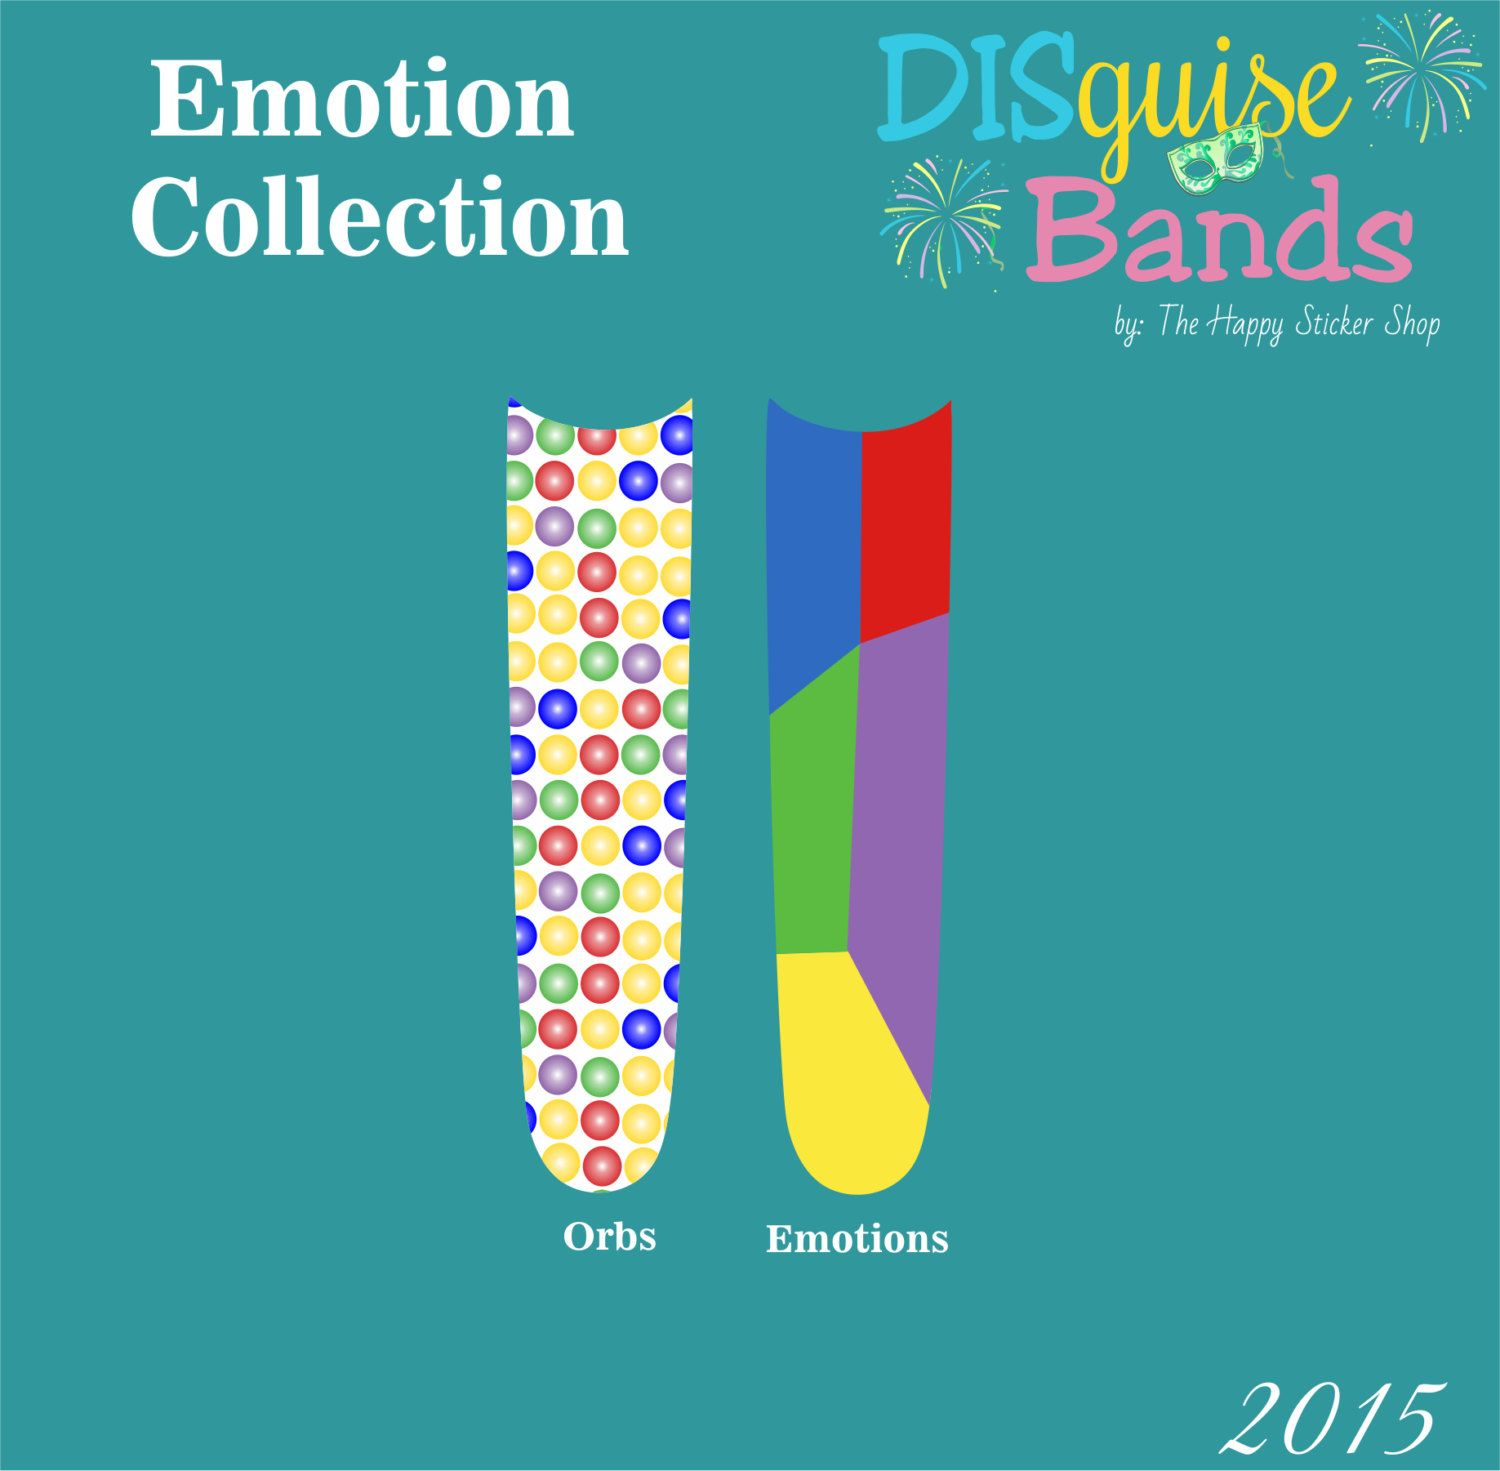 Emotions Collection Magic Band Decal DISguise Band Vinyl Decal To - Magic band vinyl decals